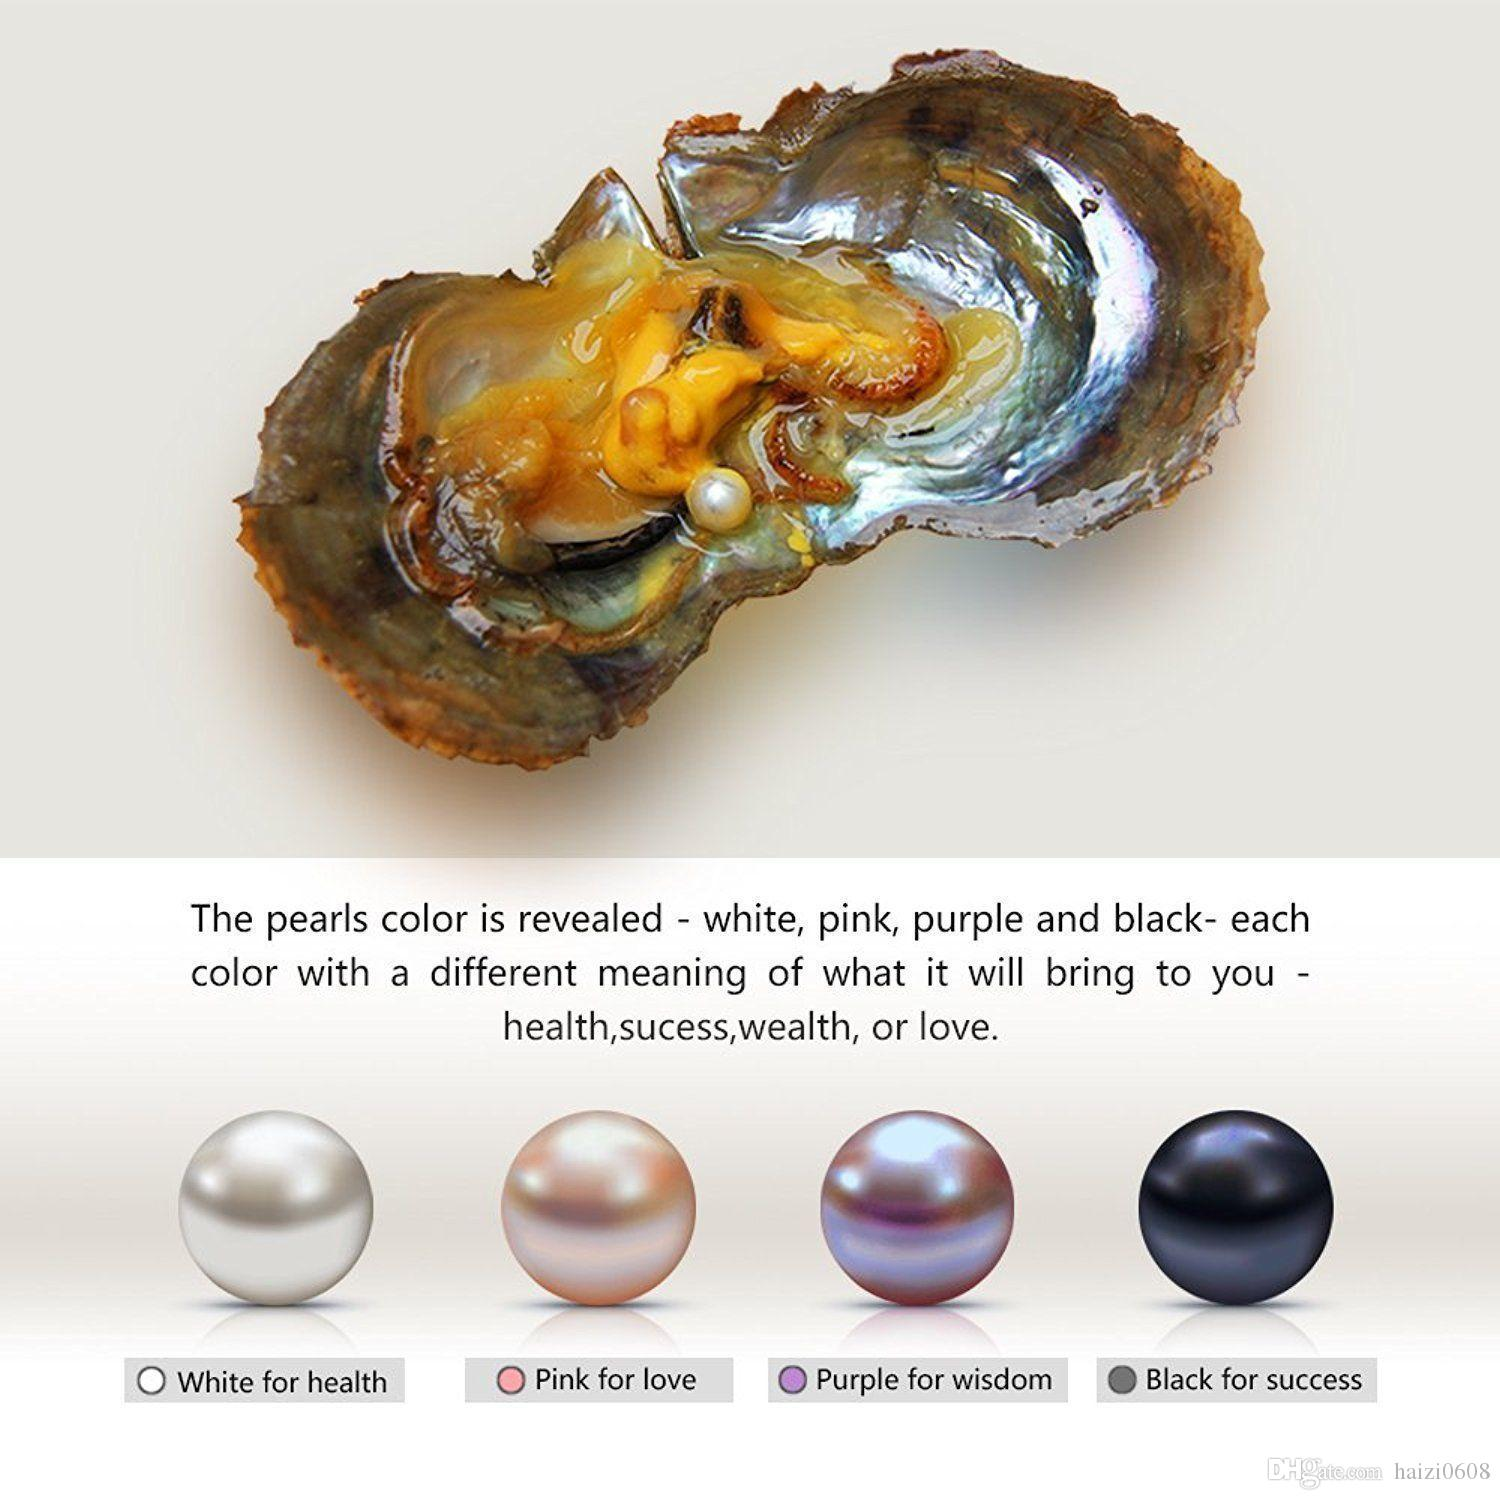 Nouveau 6-7mm Best Wish Pearl Oyster Oval Round Pearl Gift DIY Pearl Pour Pedant